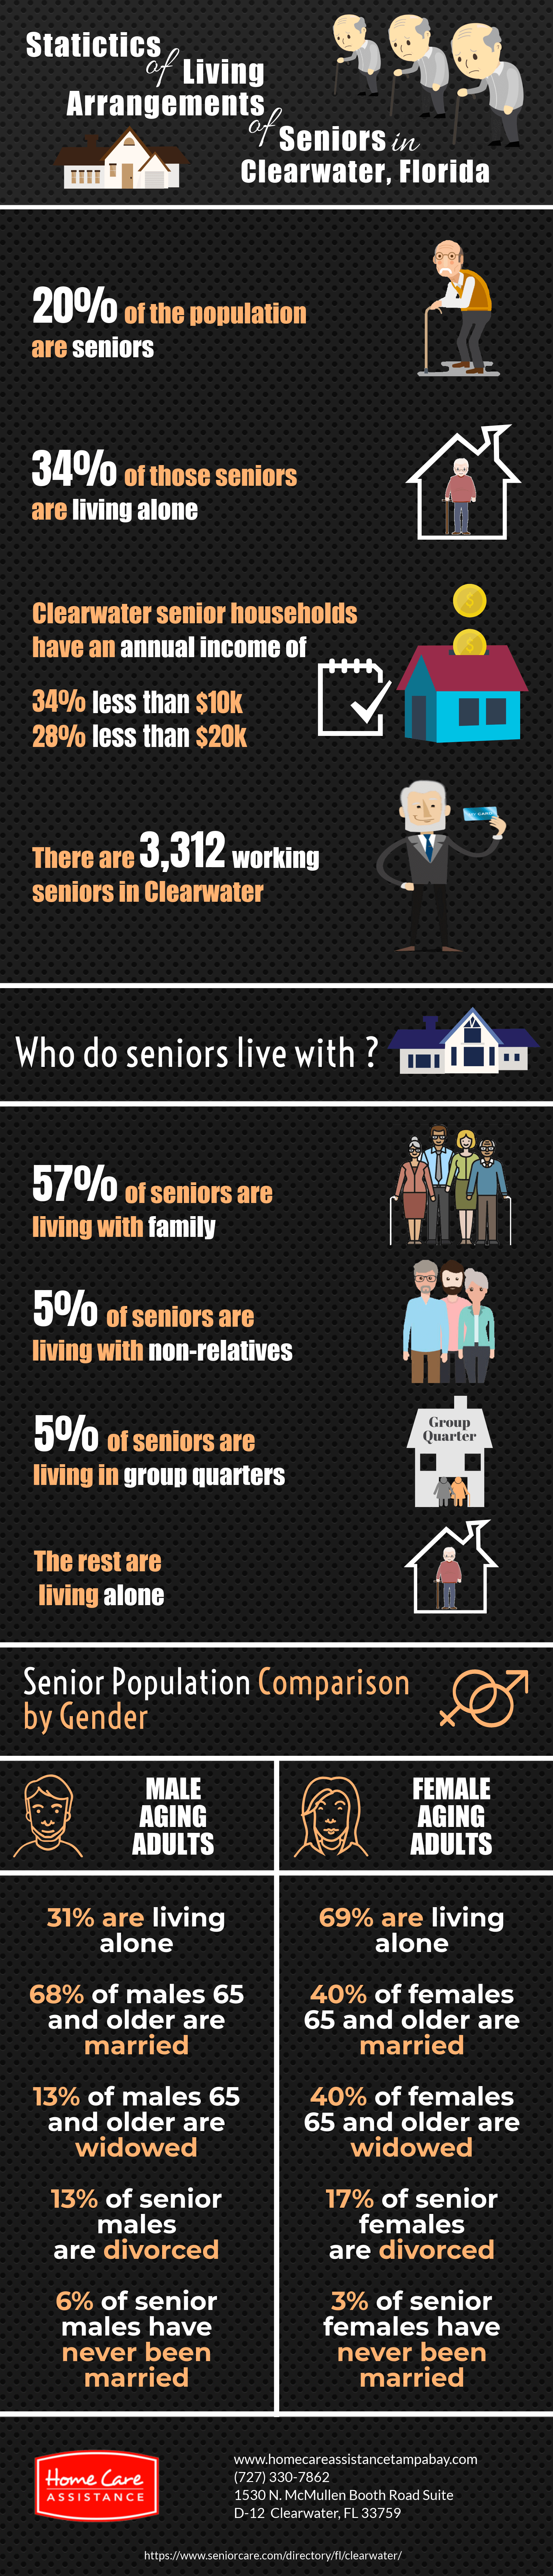 Statistics of Living Arrangements of Seniors in Clearwater, Florida